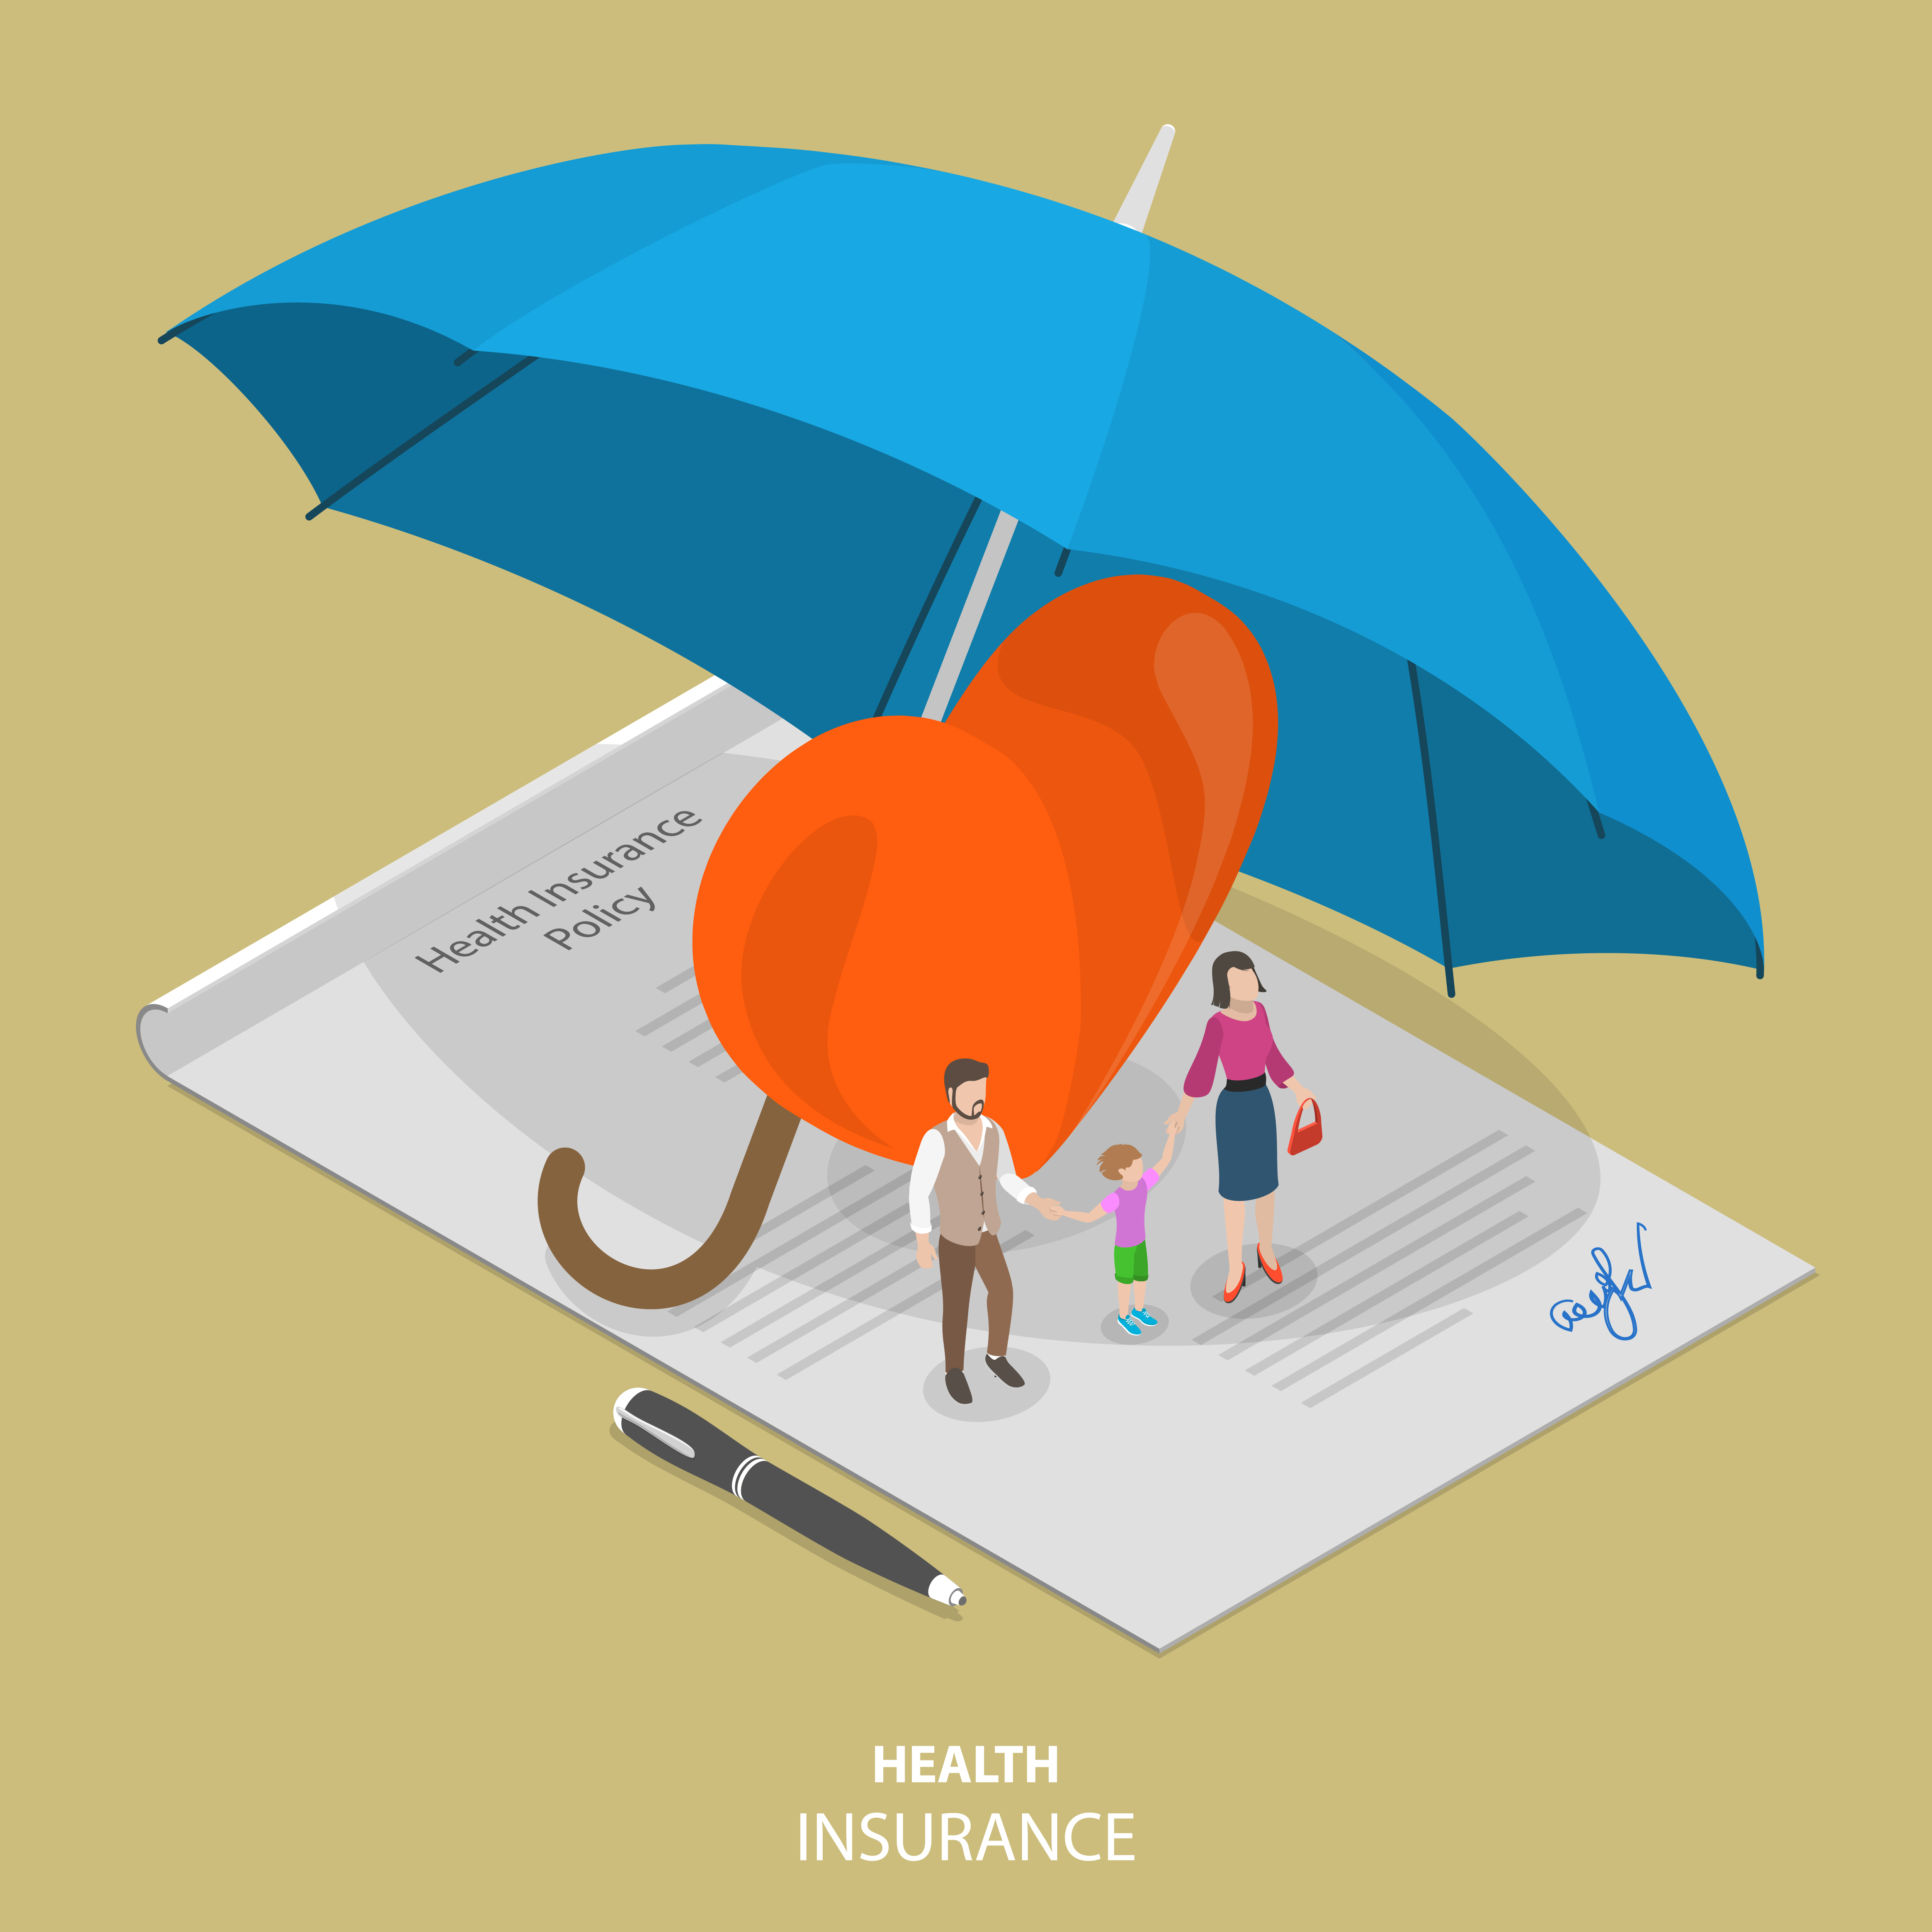 Low levels of insurance penetration remains a major challenge in Indian healthcare: Economic Survey 2019